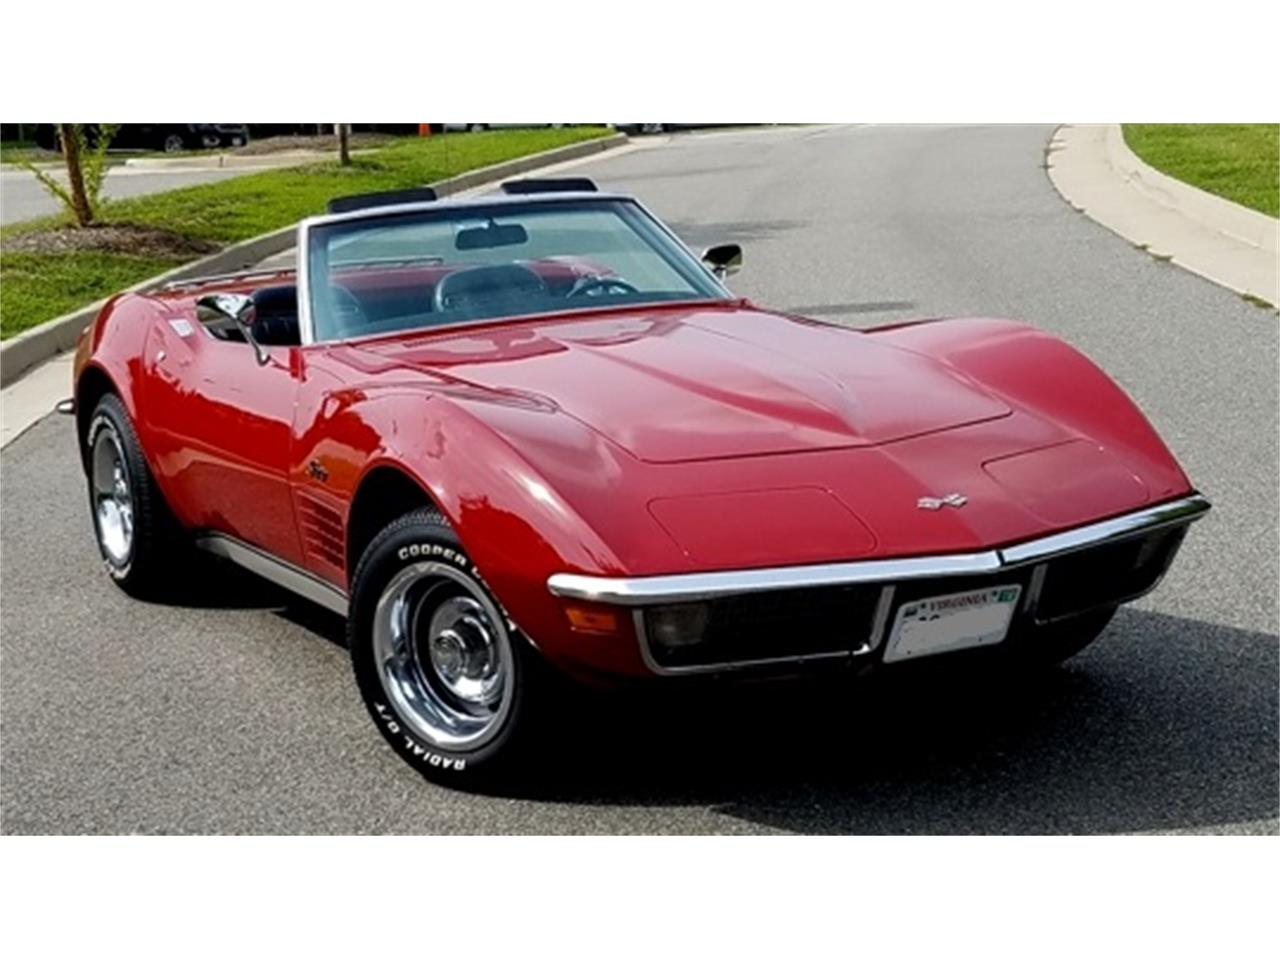 1971 Chevrolet Corvette (CC-1086434) for sale in Chesterfield, Virginia